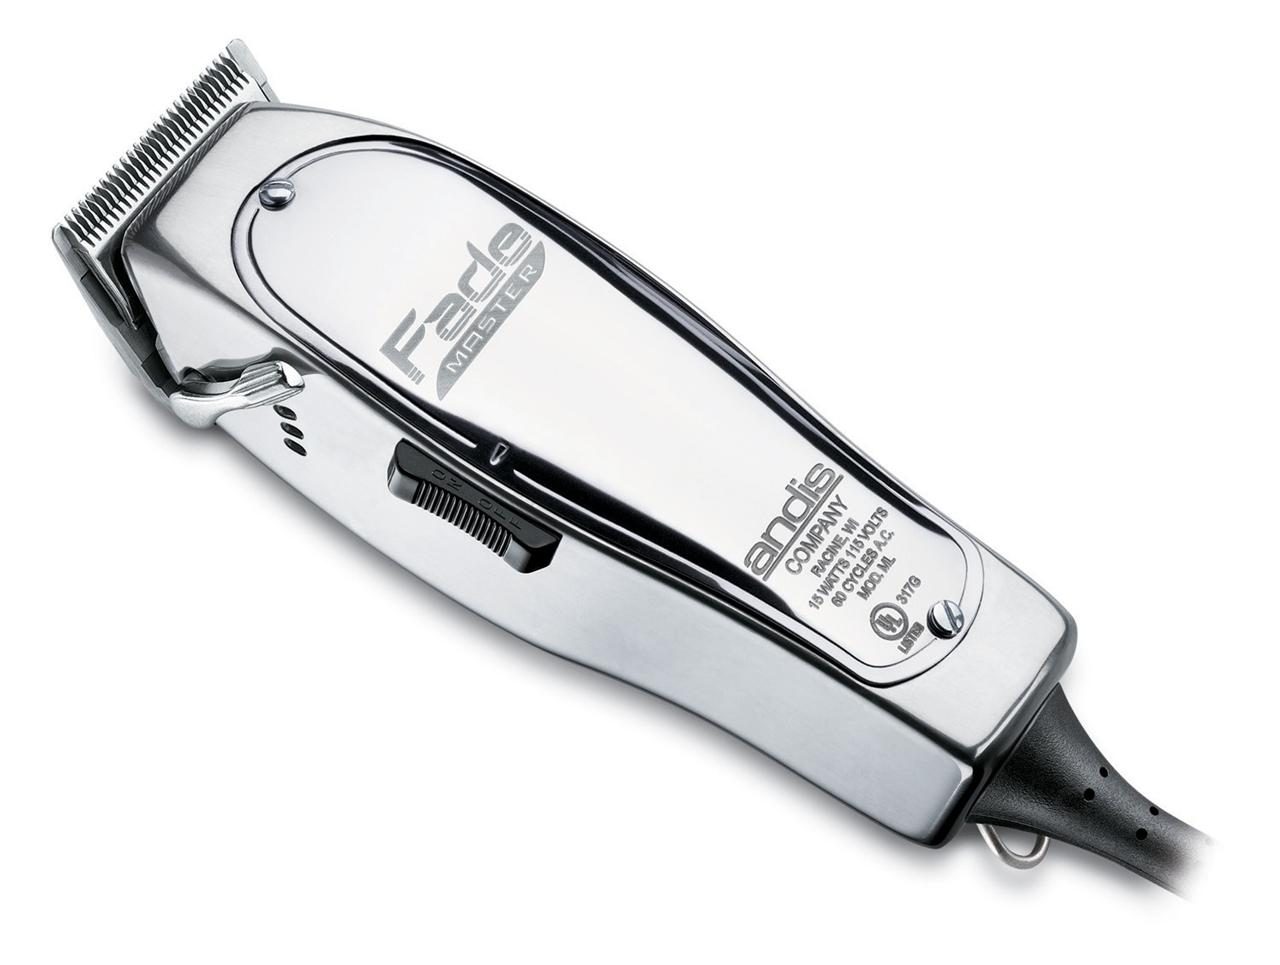 Alfa img - Showing > Best Barber Clippers for Fades